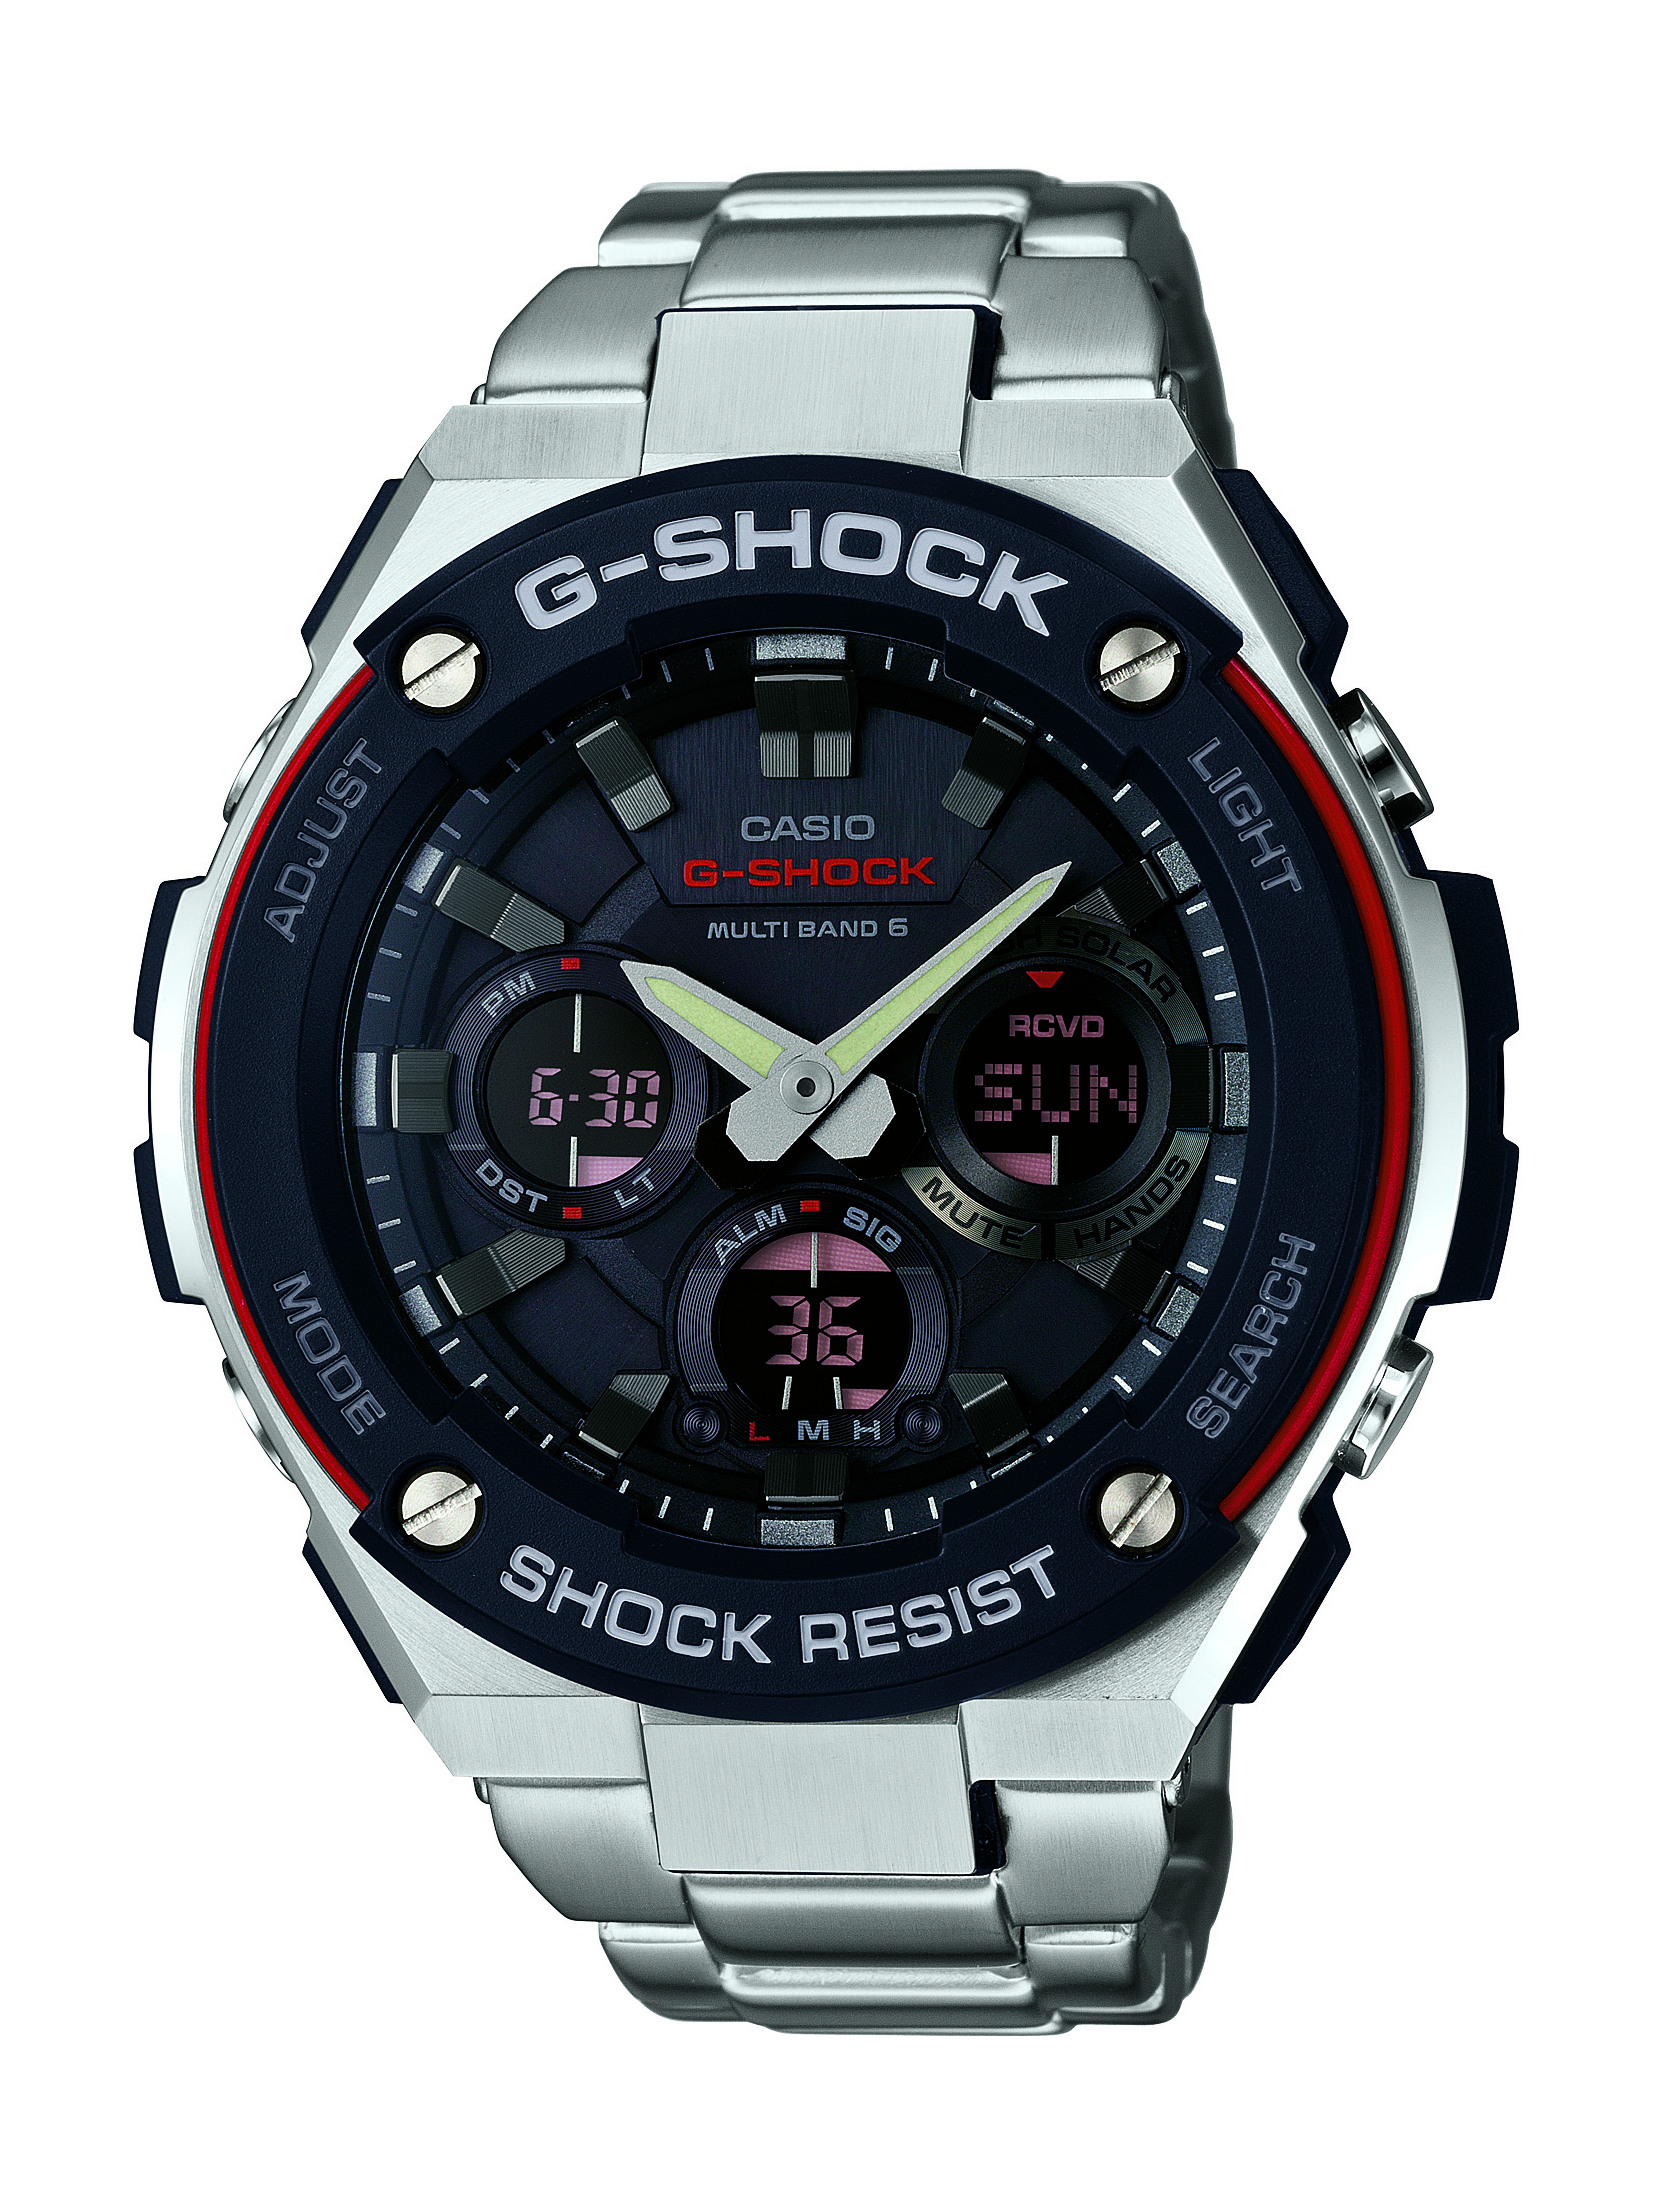 montre casio ne sonne plus 1UaSF